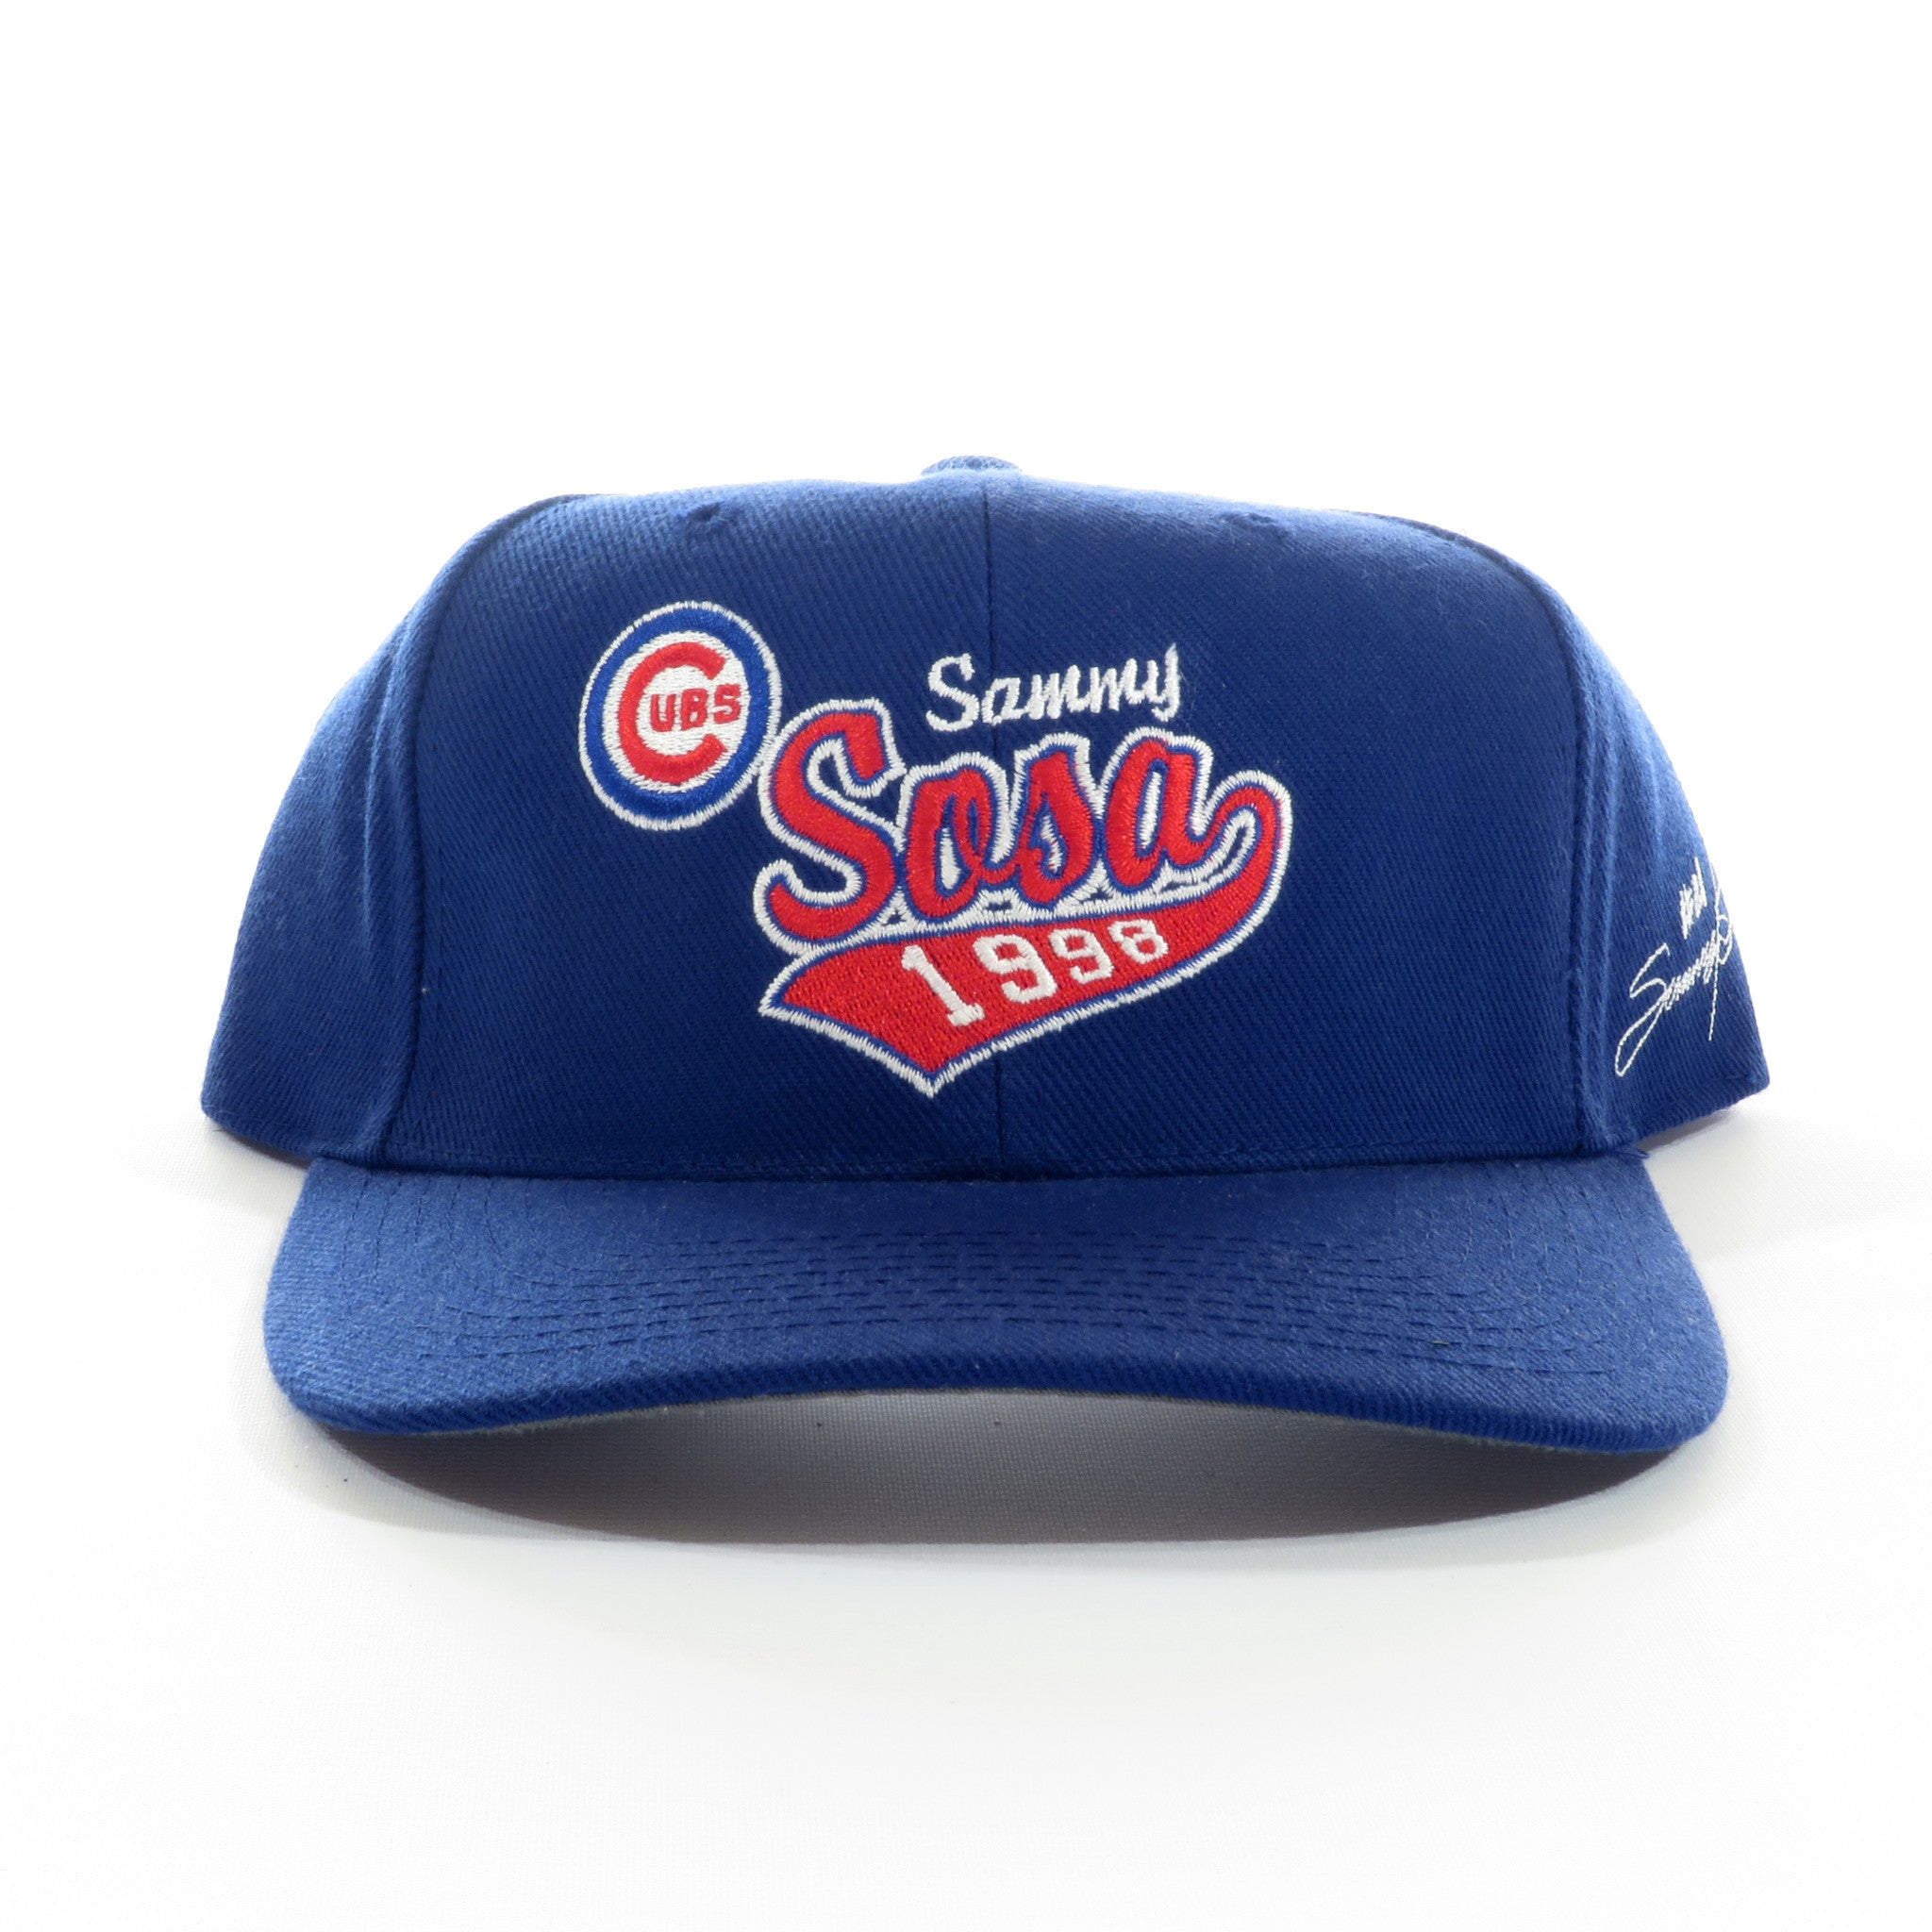 Sports Specialties Sammy Sosa Chicago Cubs Snapback Hat